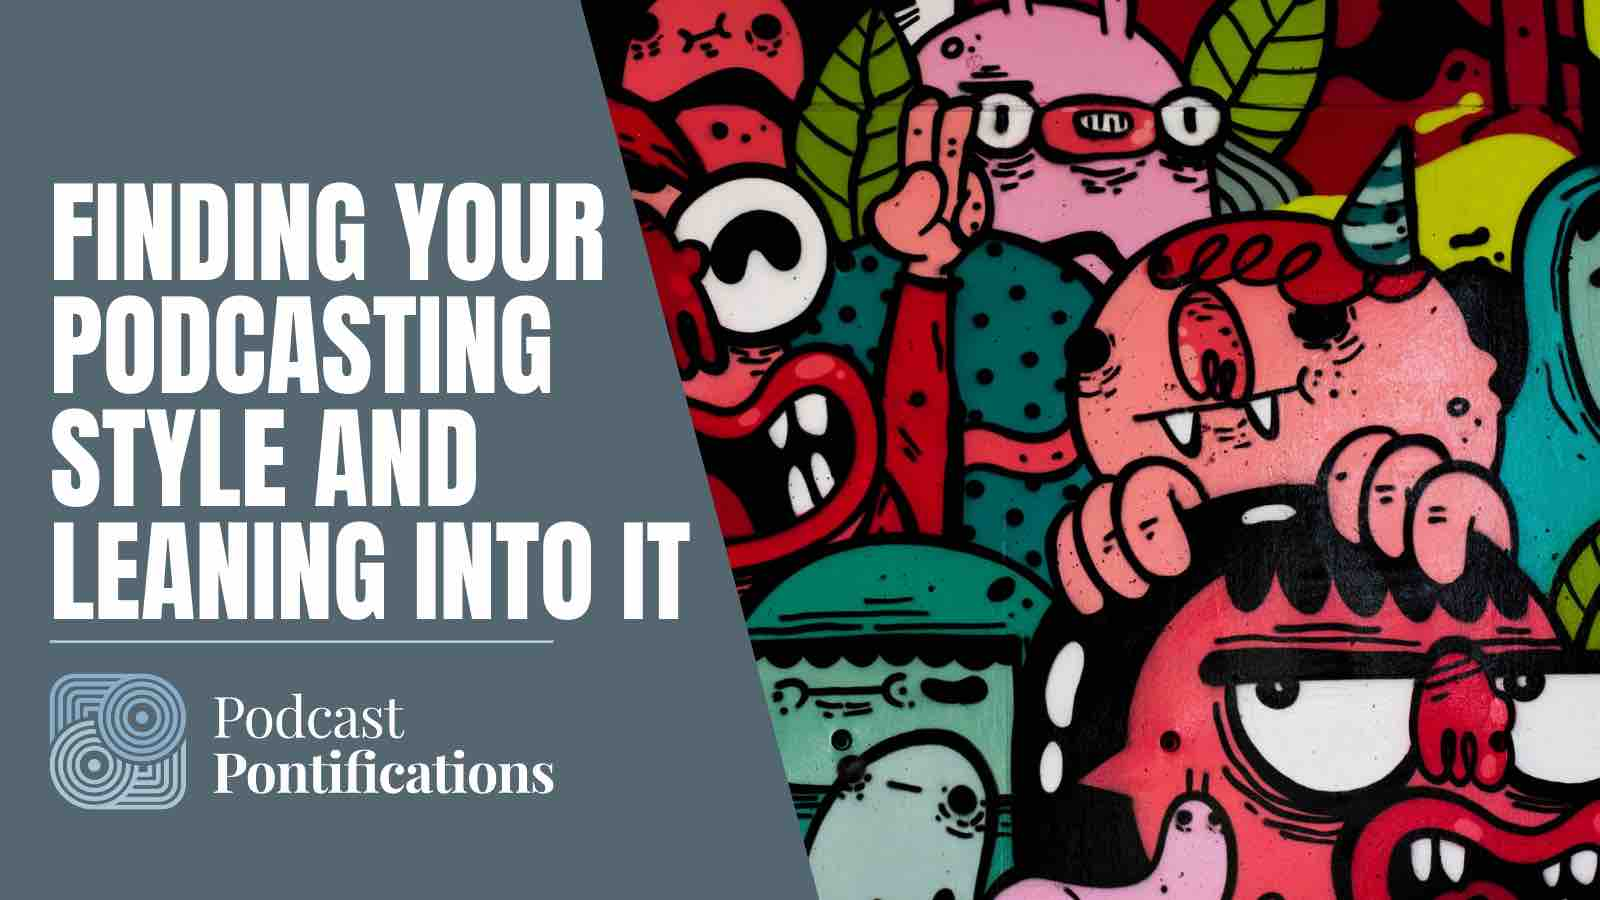 Finding Your Podcasting Style And Leaning Into It